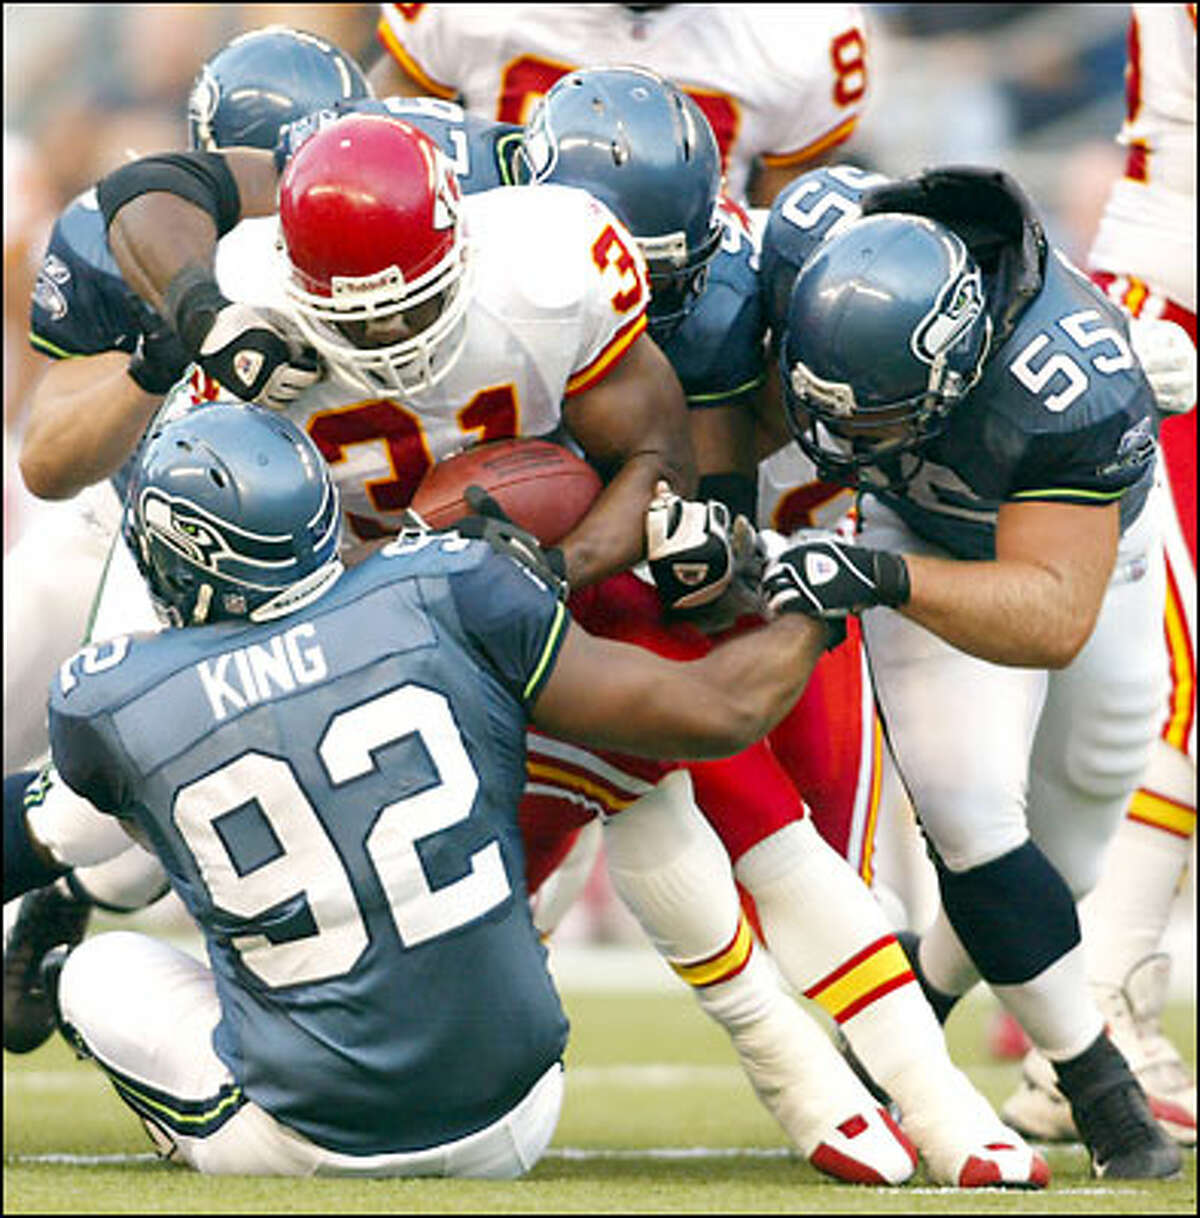 Lamar King stops the Chiefs' Priest Holmes with help from Marcus Bell (55) and Brandon Mitchell (97) in the Seahawks' lone preseason win.